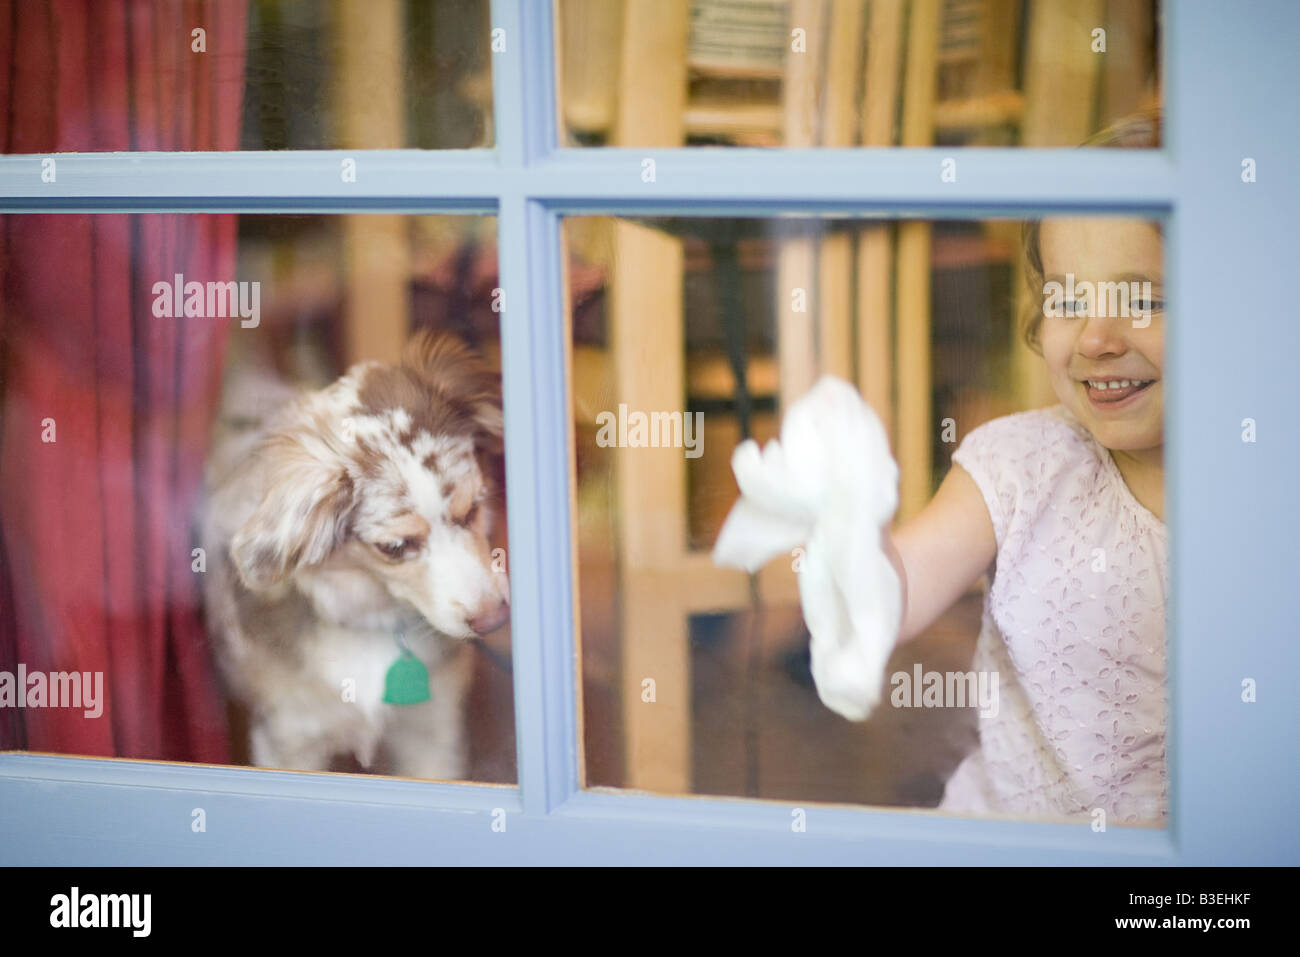 Girl cleaning window - Stock Image